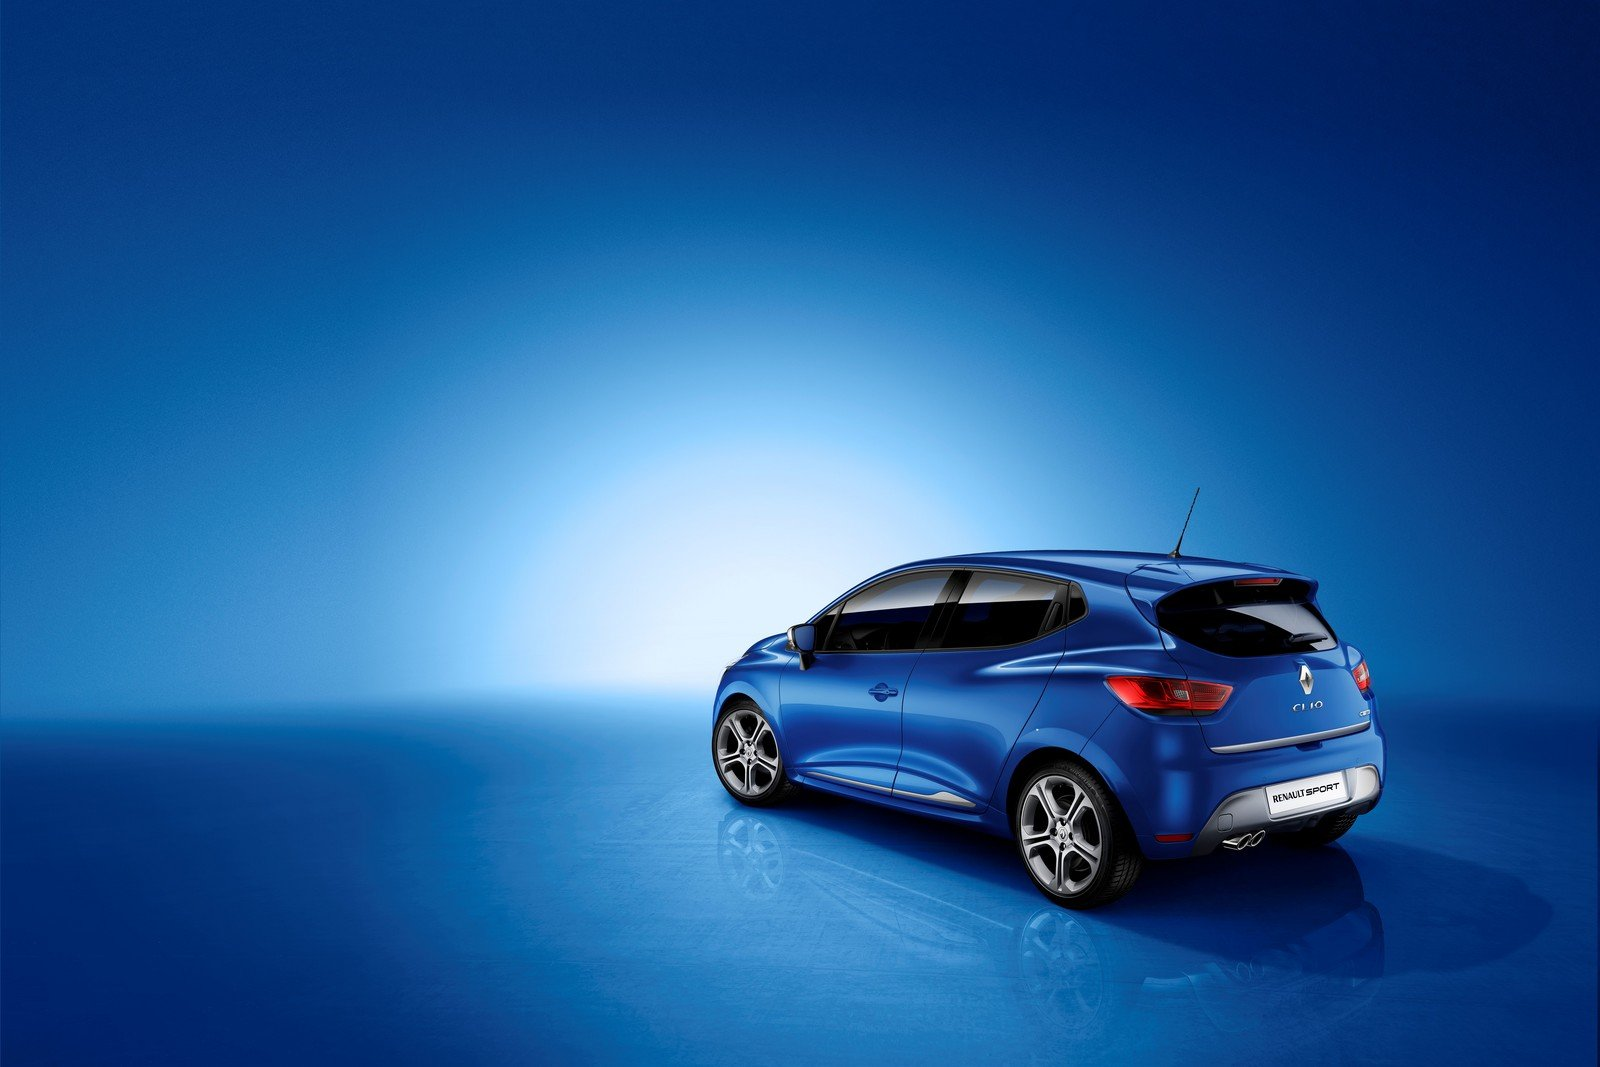 2013 renault clio gt 120 edc review top speed. Black Bedroom Furniture Sets. Home Design Ideas